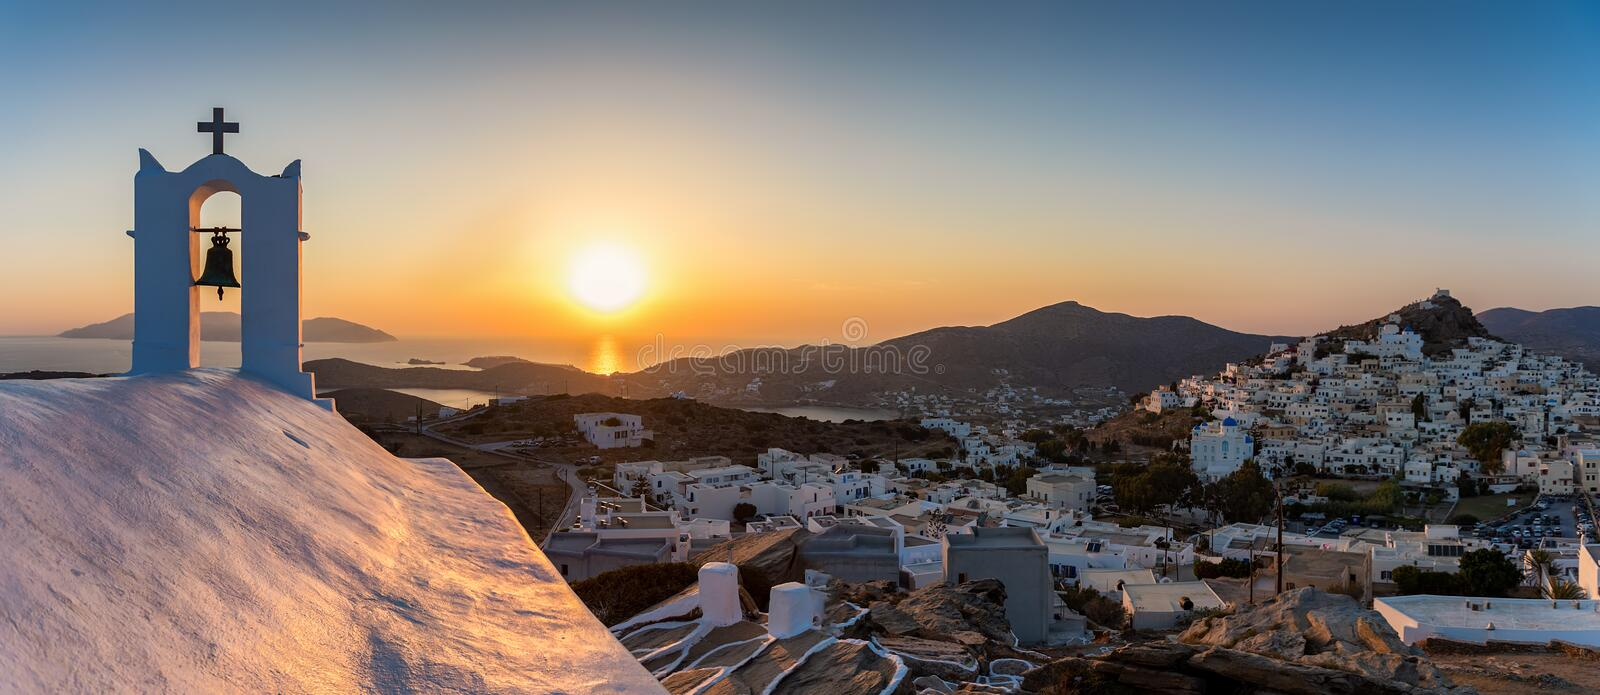 Panoramic view over the town of Ios island during sunset time royalty free stock images